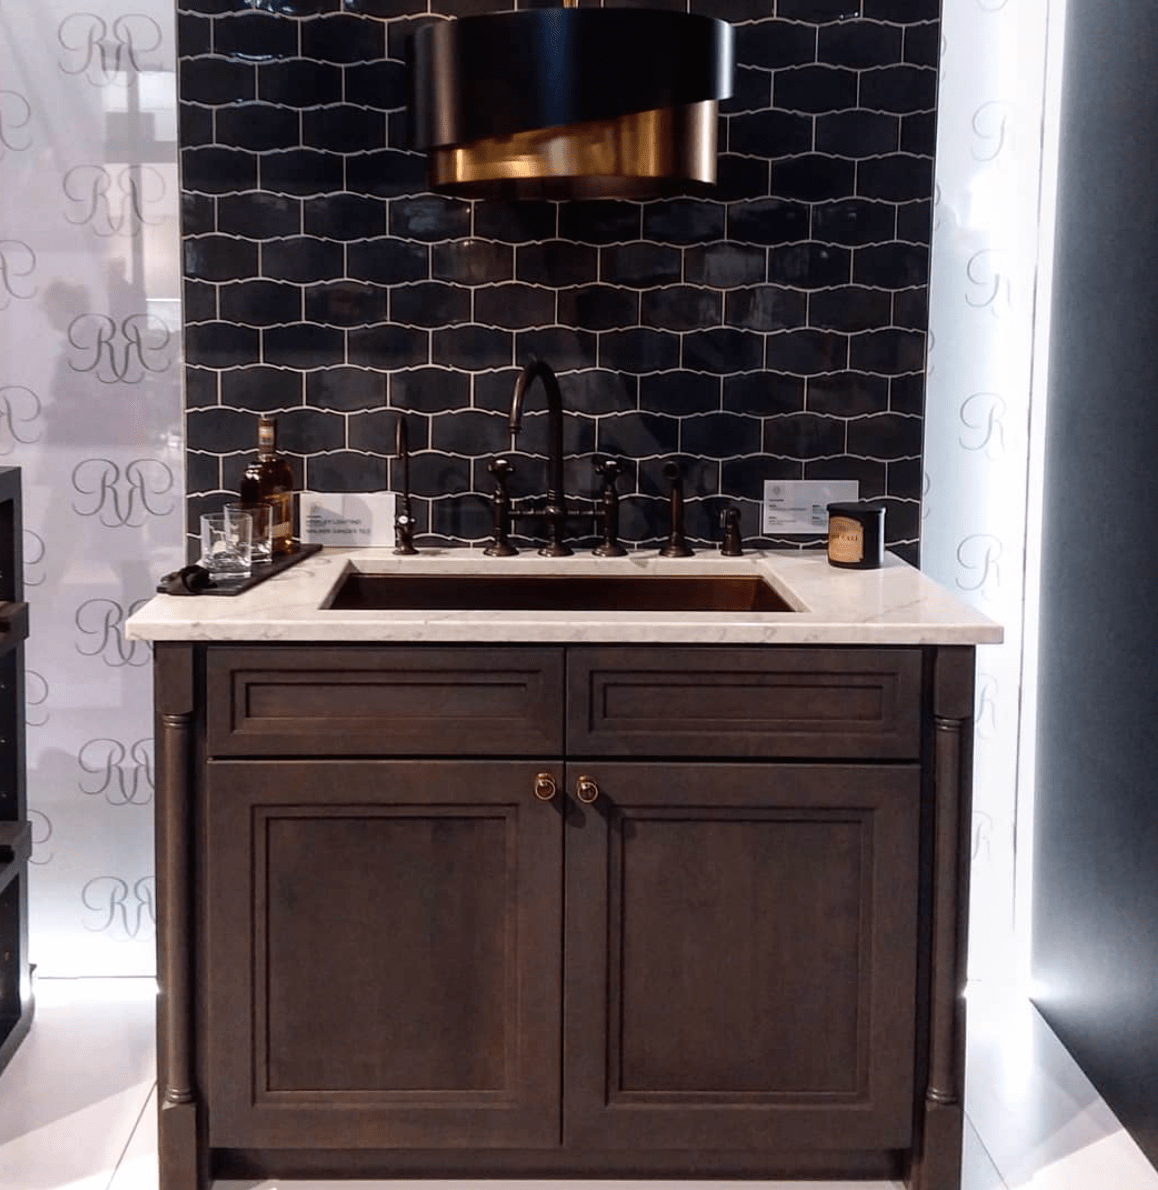 The Biggest Kitchen And Bath Trends For 2020 And 2021 Amanda Gates Feng Shui Bath Trends Bathroom Trends Kitchen And Bath